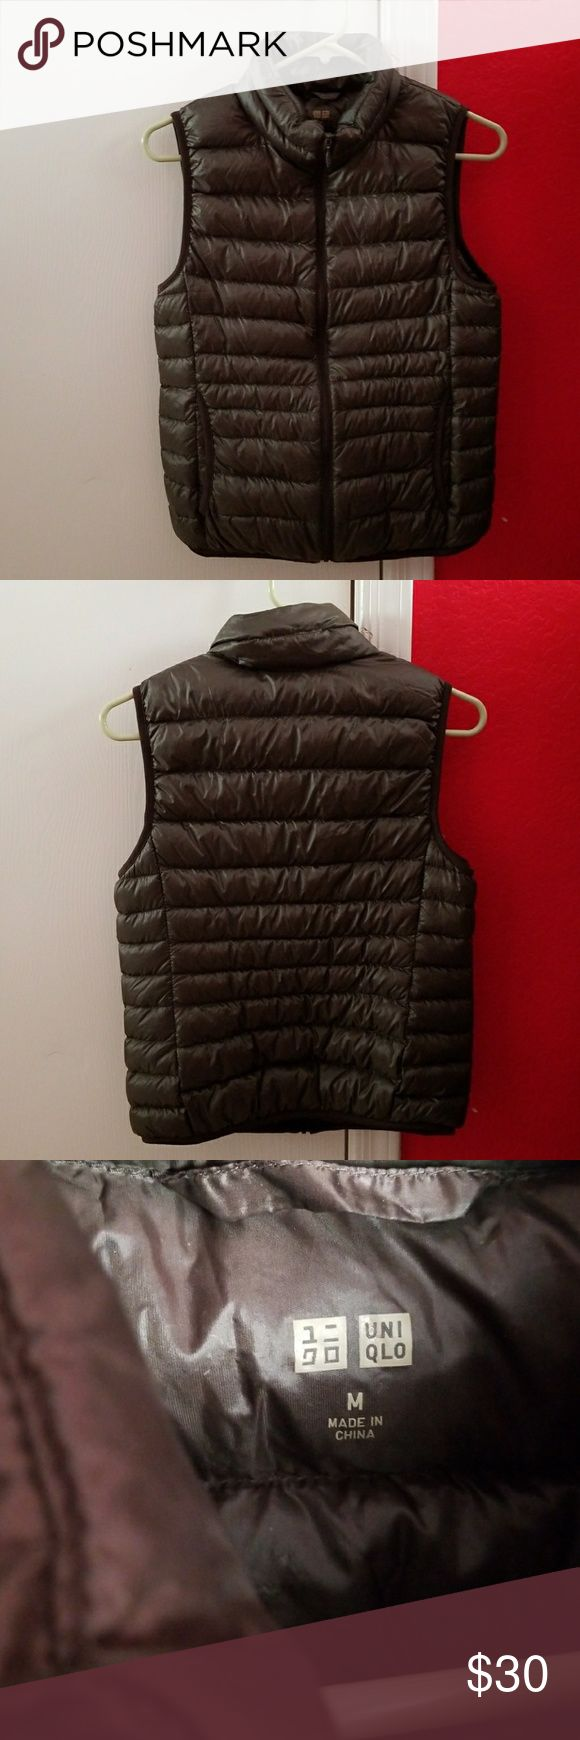 Brand new uniqlo ultra light down vest, m, brown Brand new uniqlo women ultra light down vest, size medium, color brown.Super light weight and compact! Uniqlo Jackets & Coats Vests